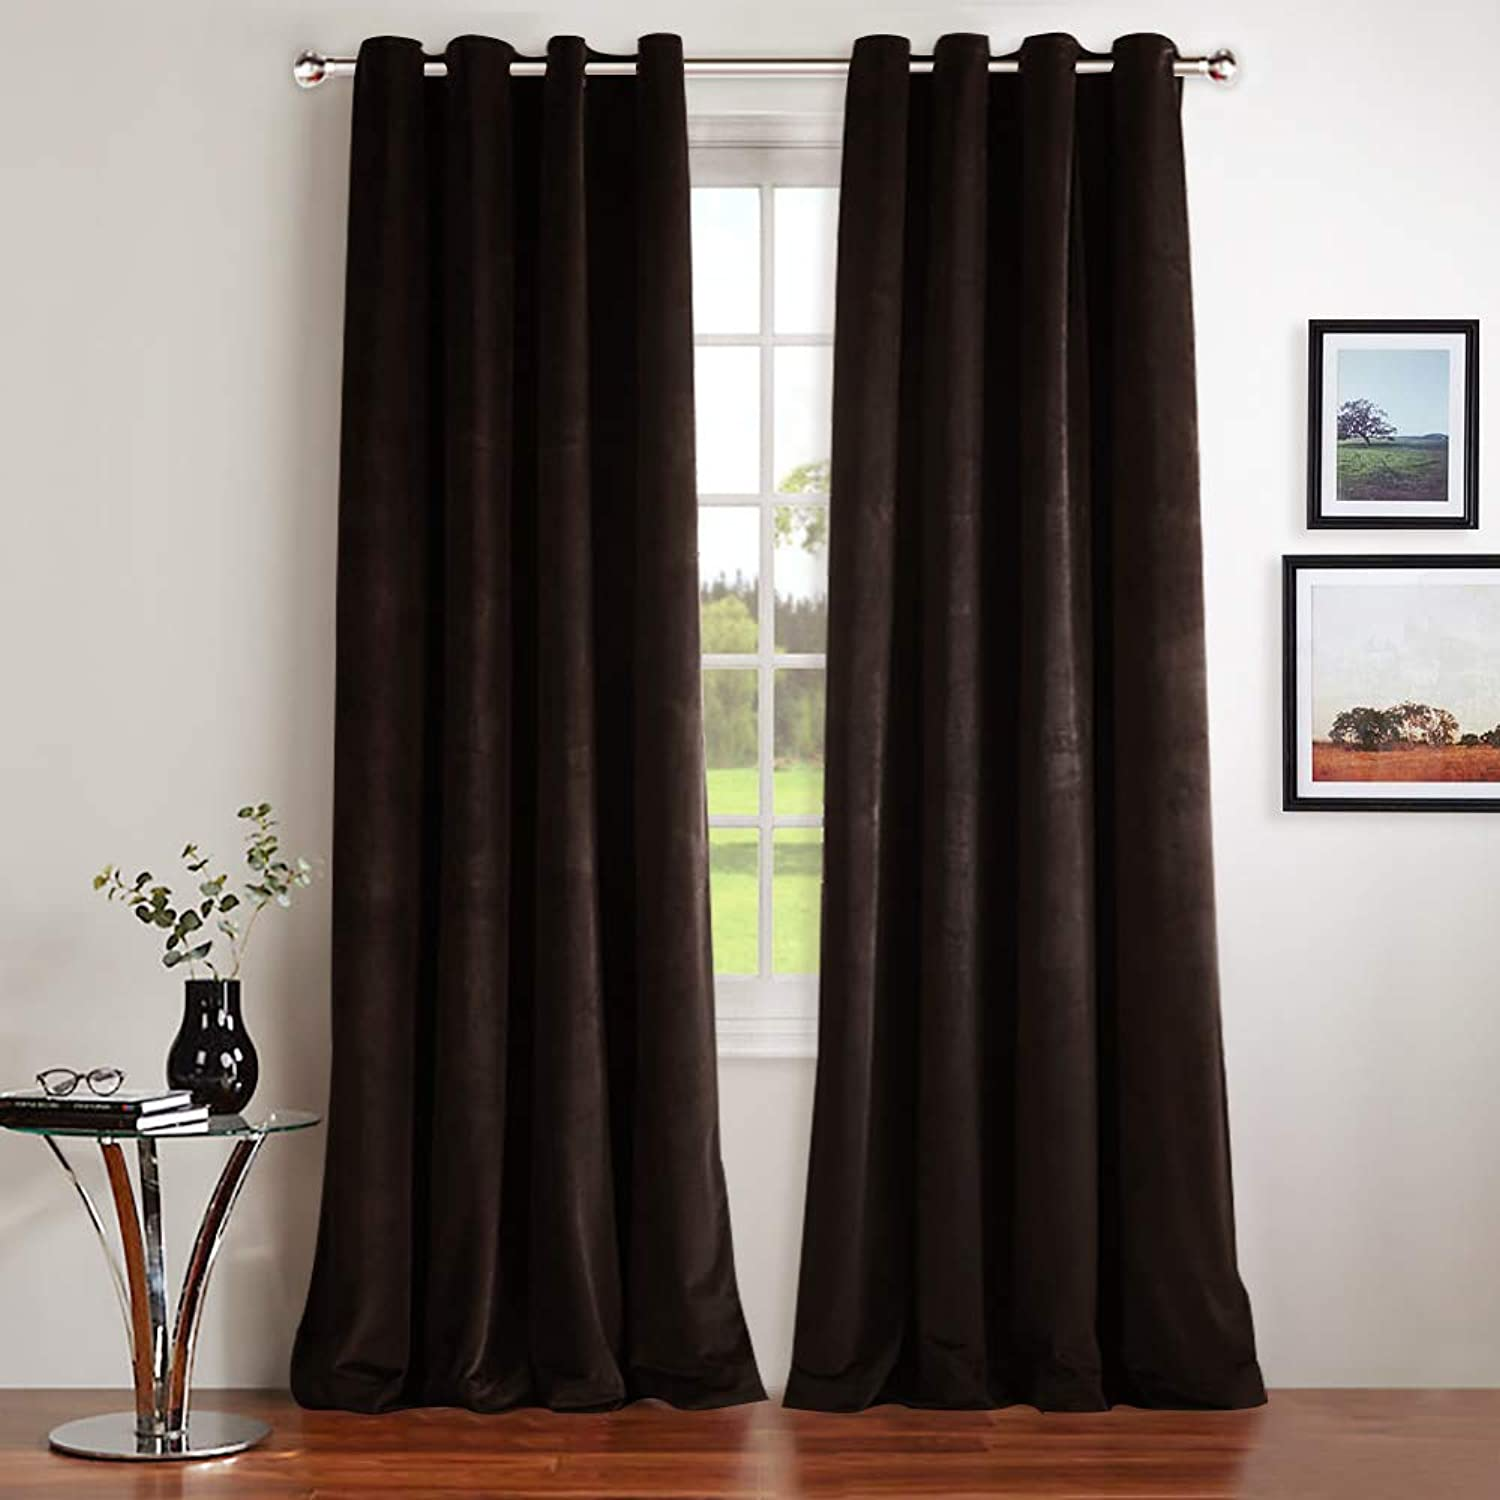 NICETOWN Velvet Textured Blackout Curtains Drapes - Blackout Curtains with Grommet for Holiday Season Home Decoration (Set of 2, W52xL96-inch, Dark Brwon)